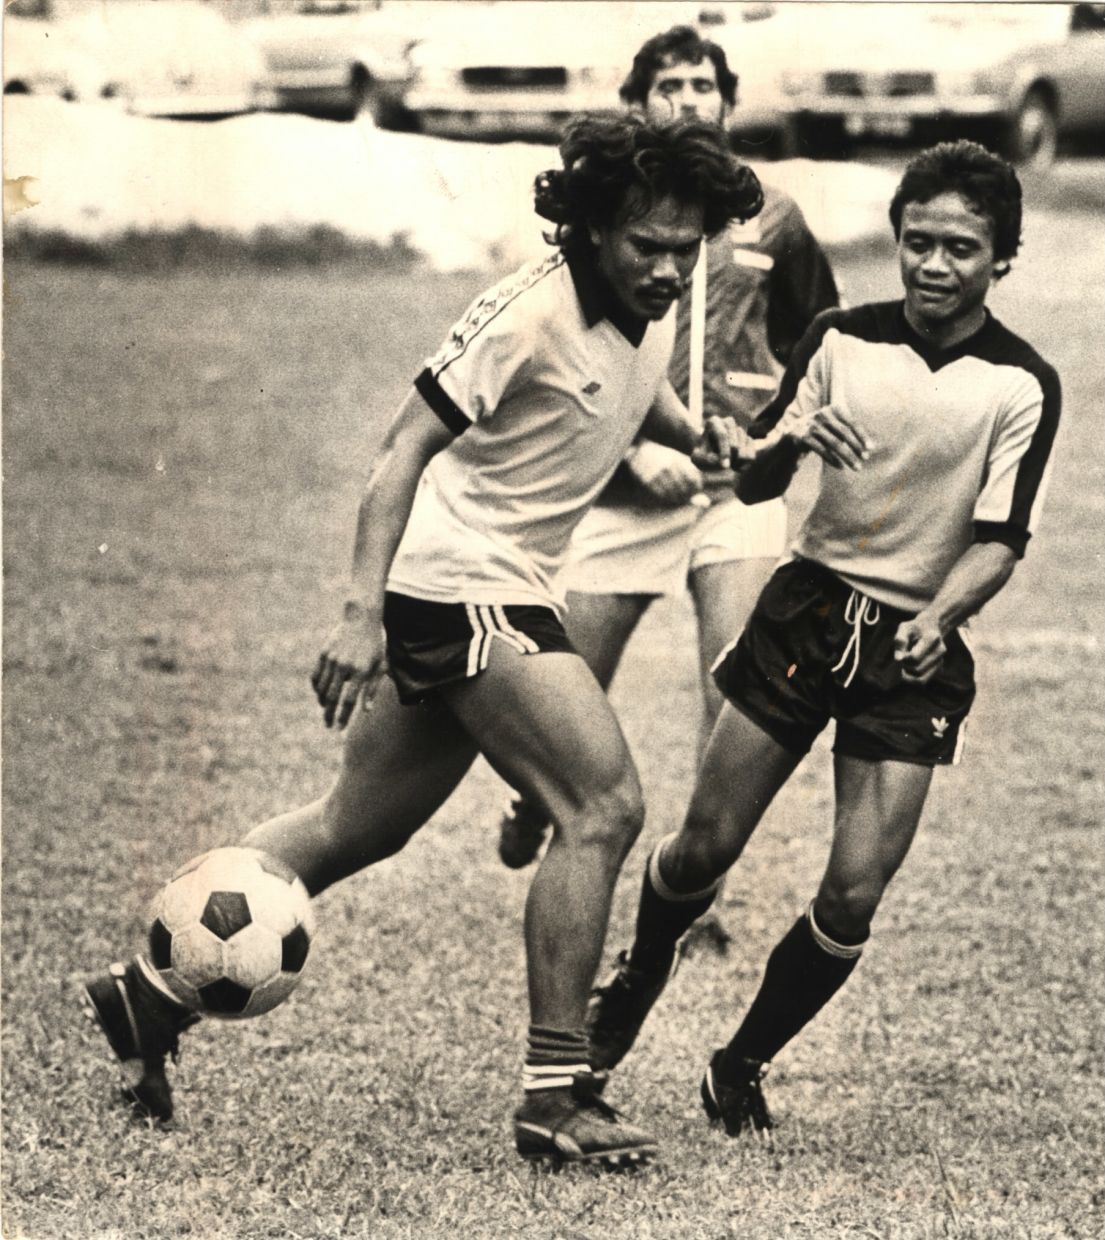 Former Malaysian footballers Mokhtar Dahari (centre) and Reduan Abdullah during training in 1979. – Photo: THE STAR/C.H. L